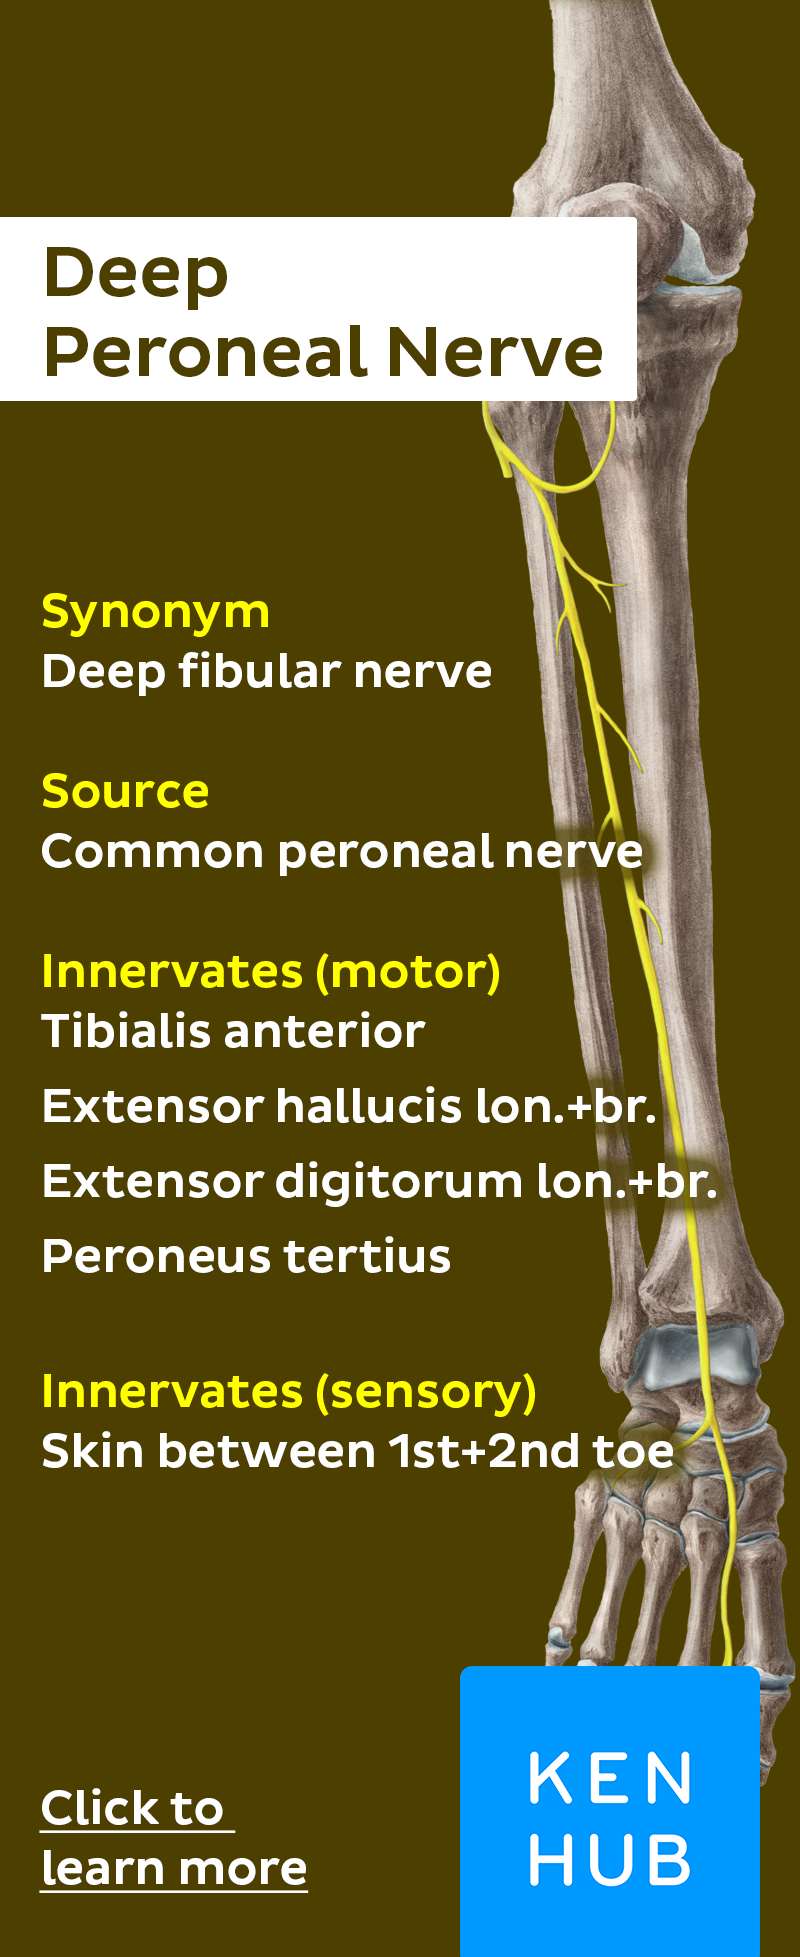 Deep Peroneal nerve | Anatomy, Learning and Medical